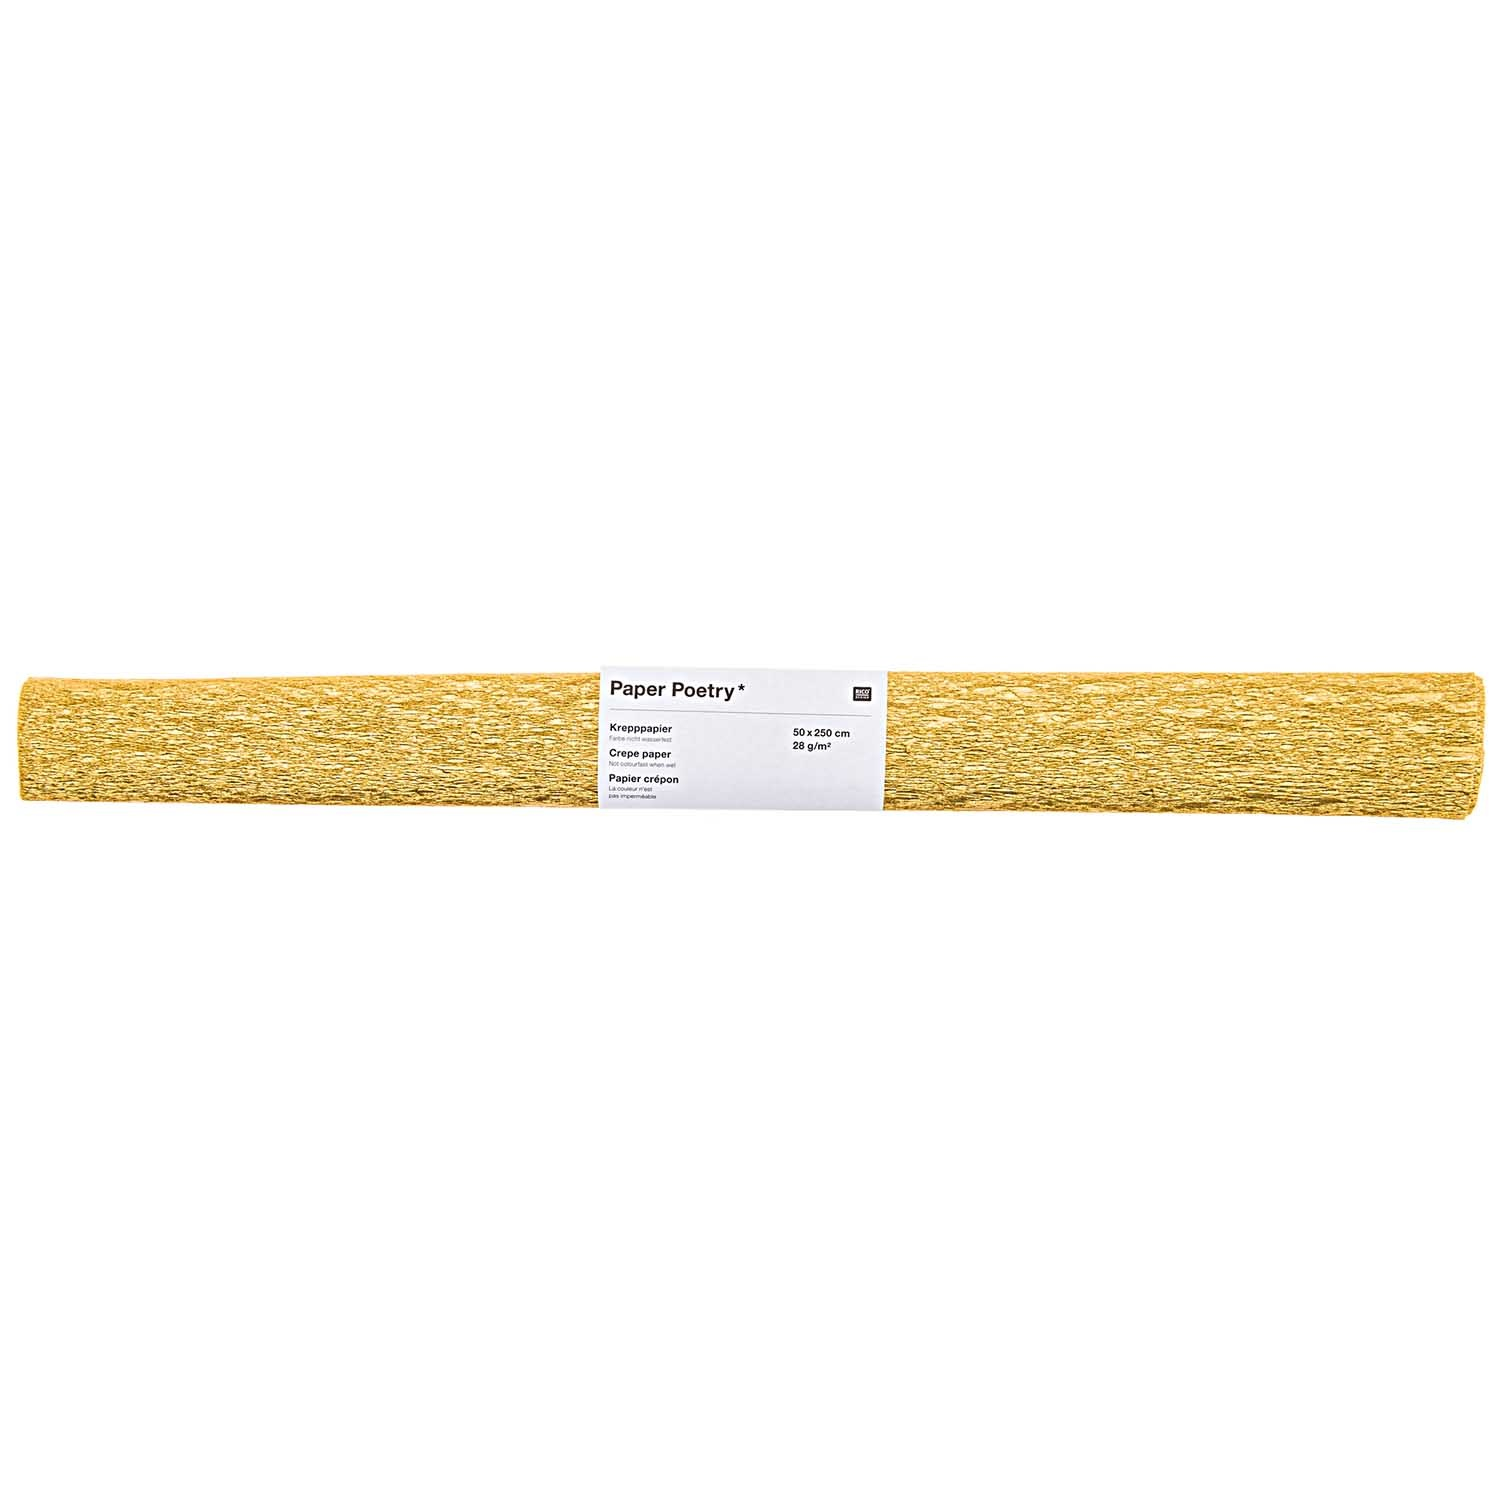 Rico NAY CREPE PAPER, GOLD 50 X 250 CM